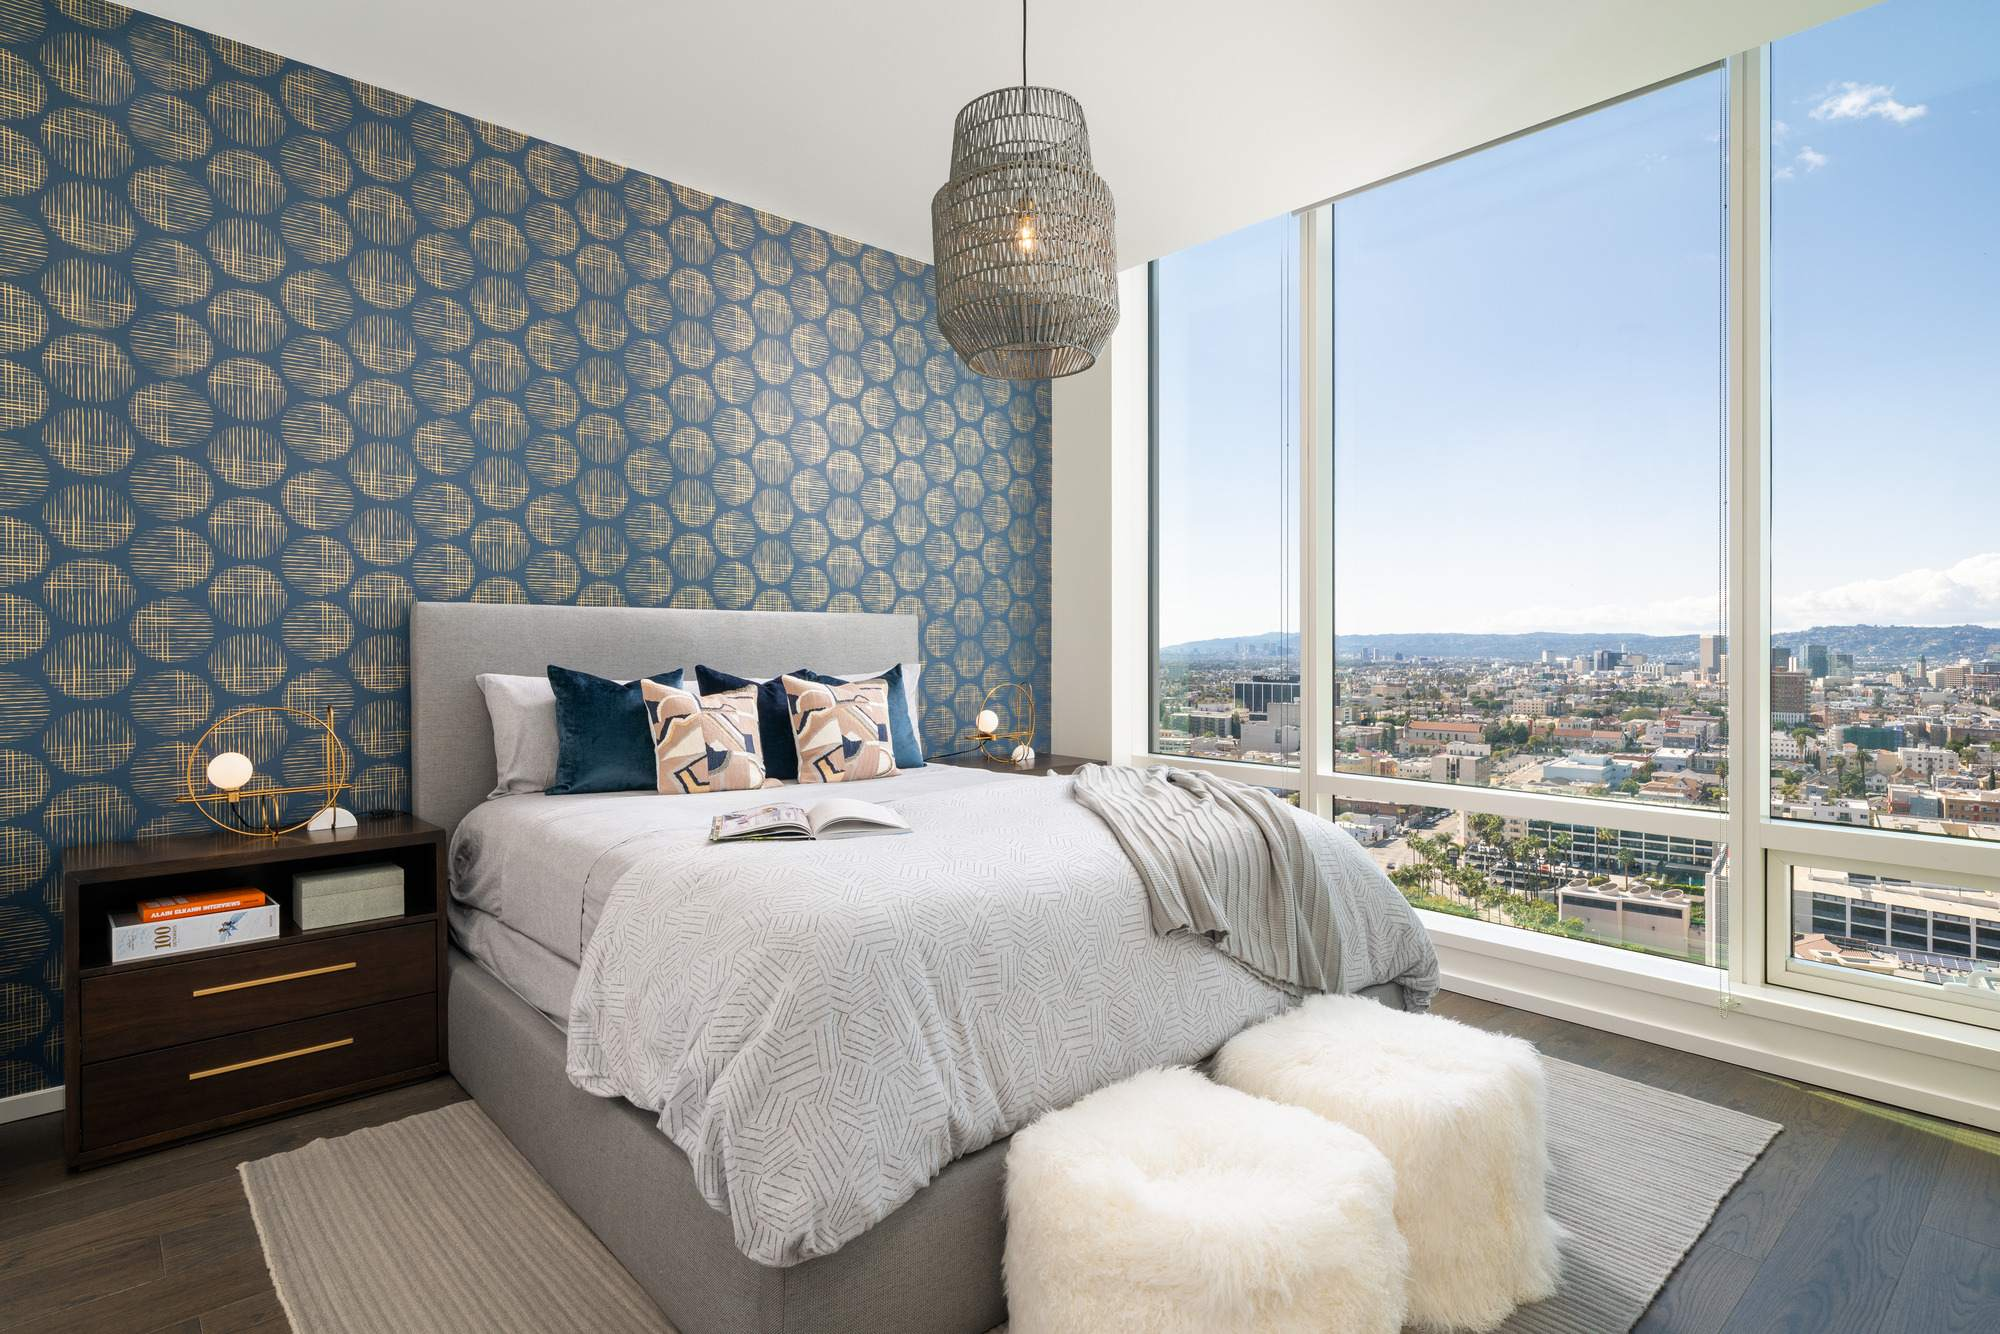 Thea-at-Metropolis-DTLA-2505-Bedroom-View